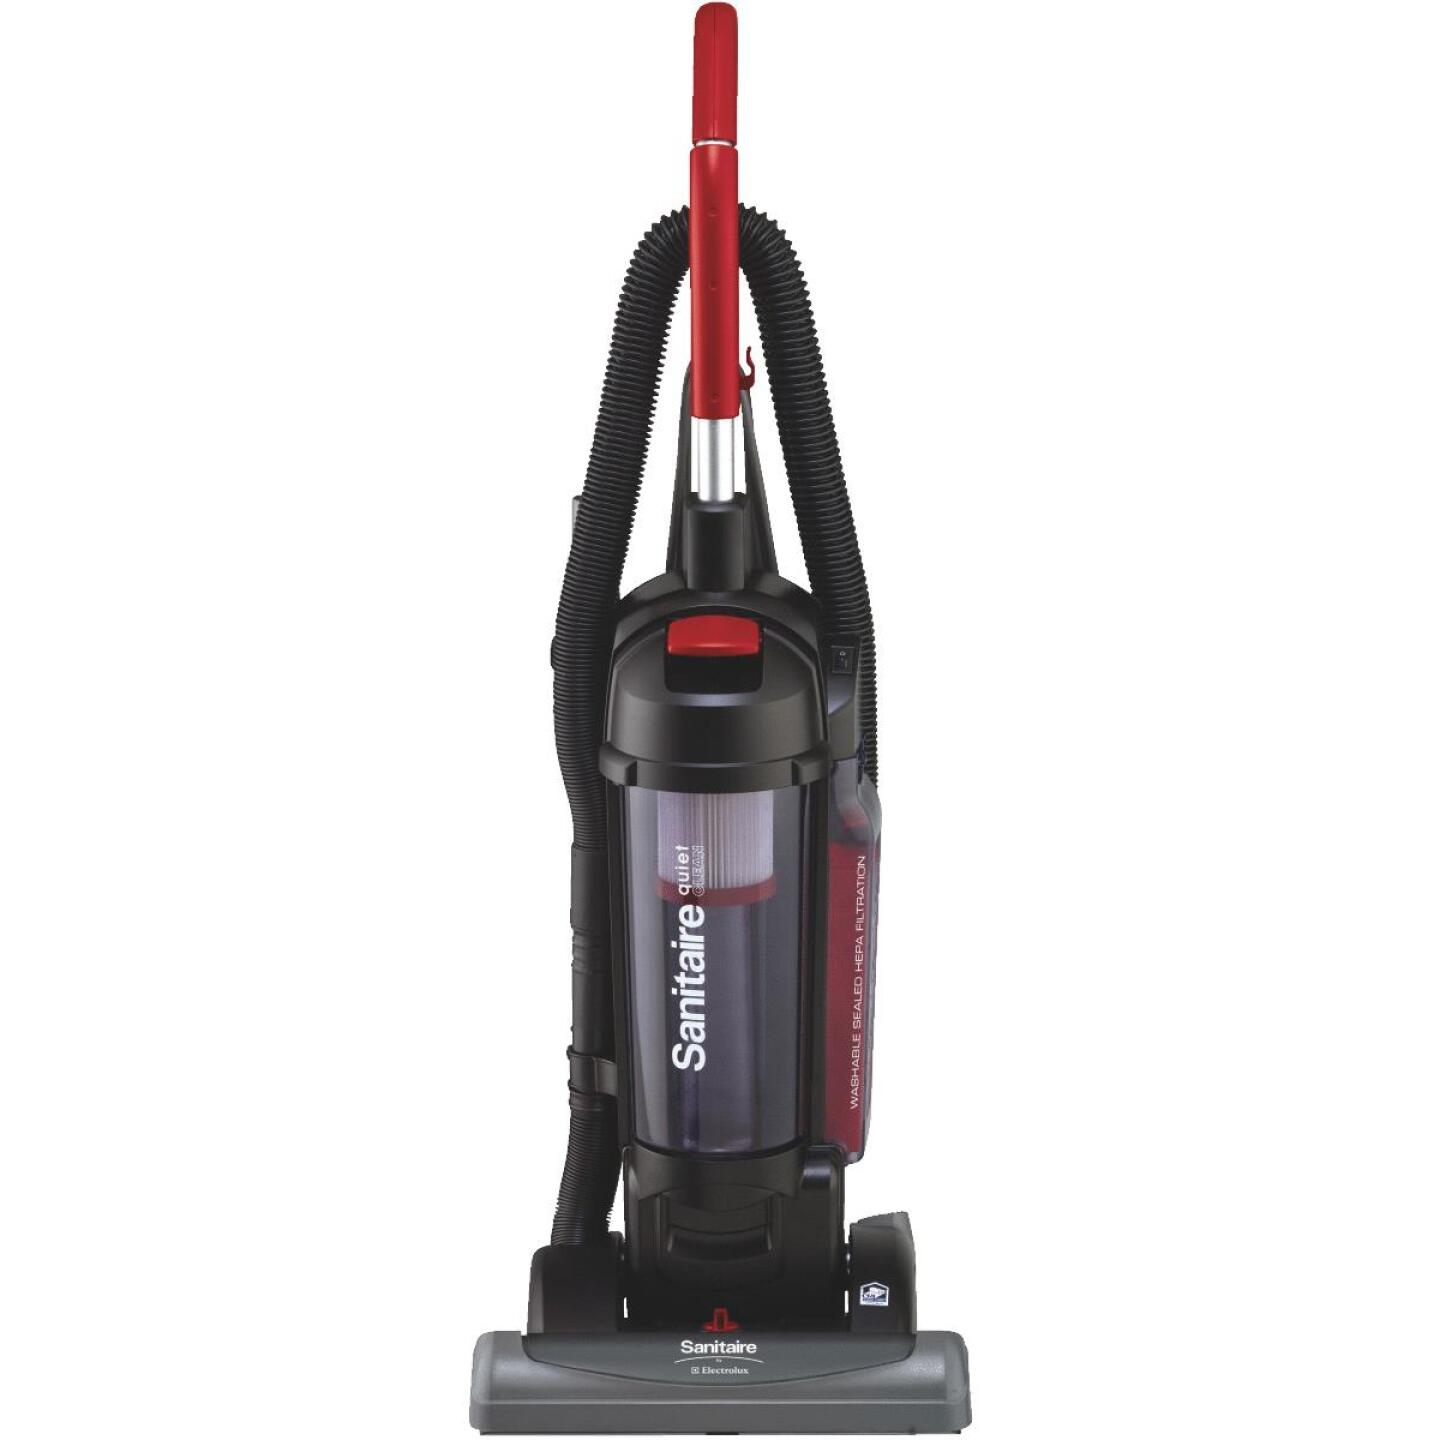 Sanitaire By Electrolux 15 In. Commercial Bagless Upright Vacuum Cleaner Image 1